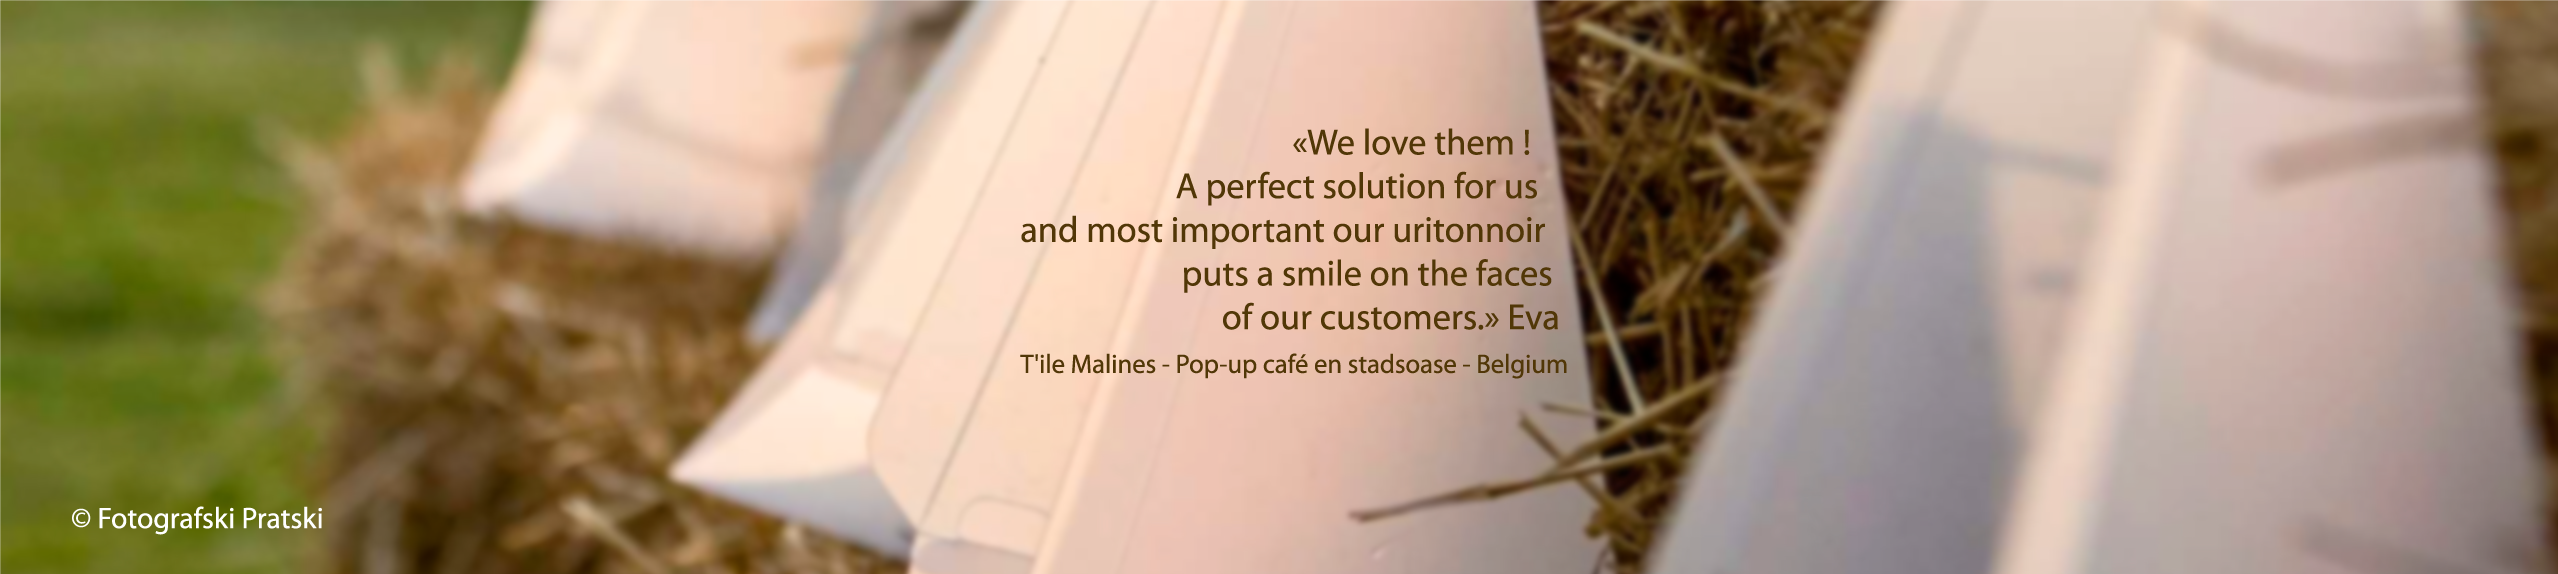 Tile-malines2